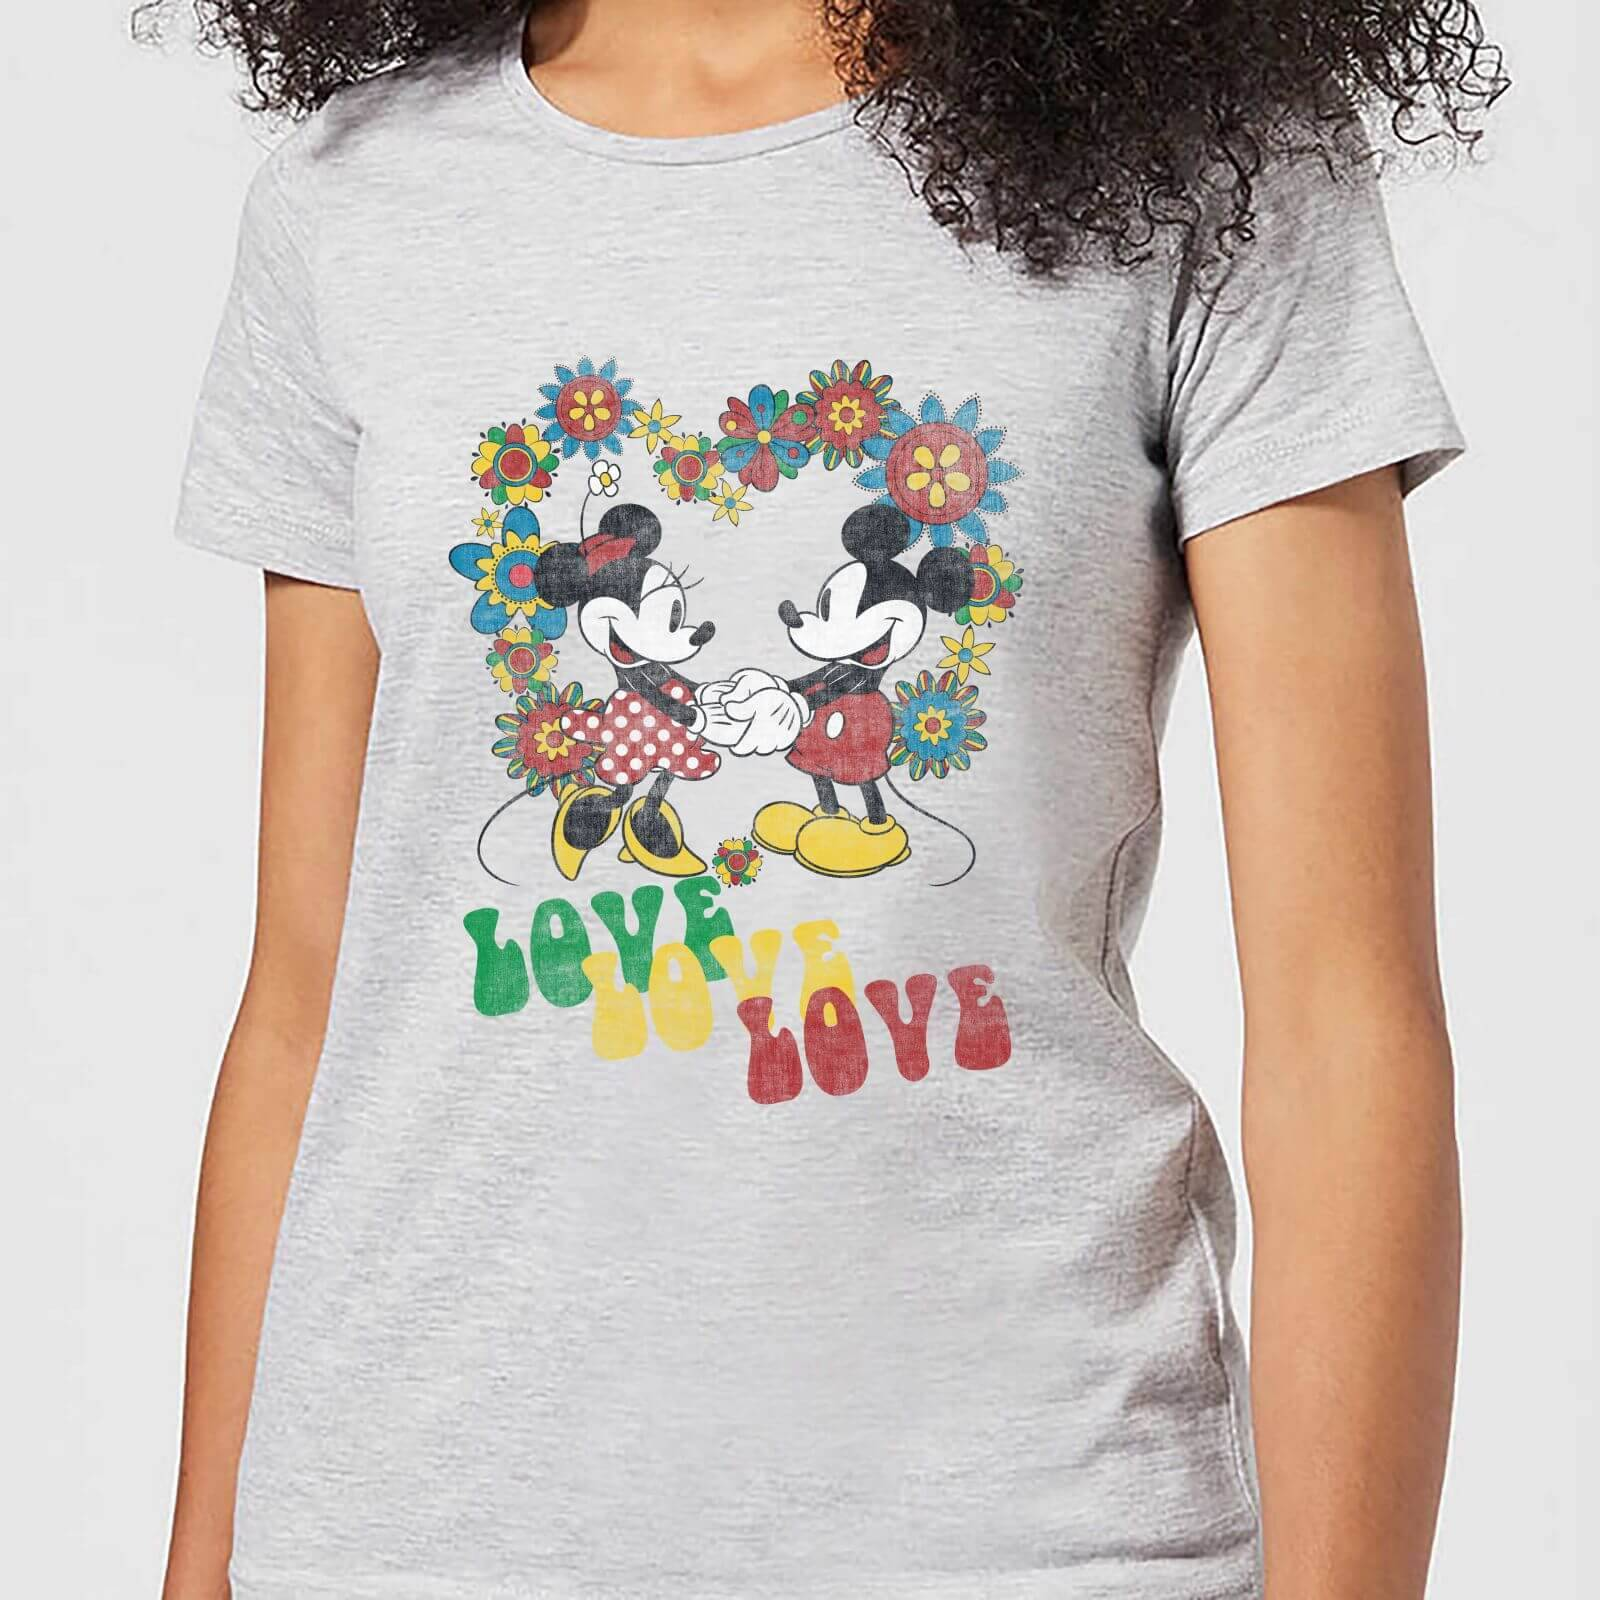 Disney Mickey Mouse Hippie Love Women's T-Shirt - Grey - 3XL - Grey